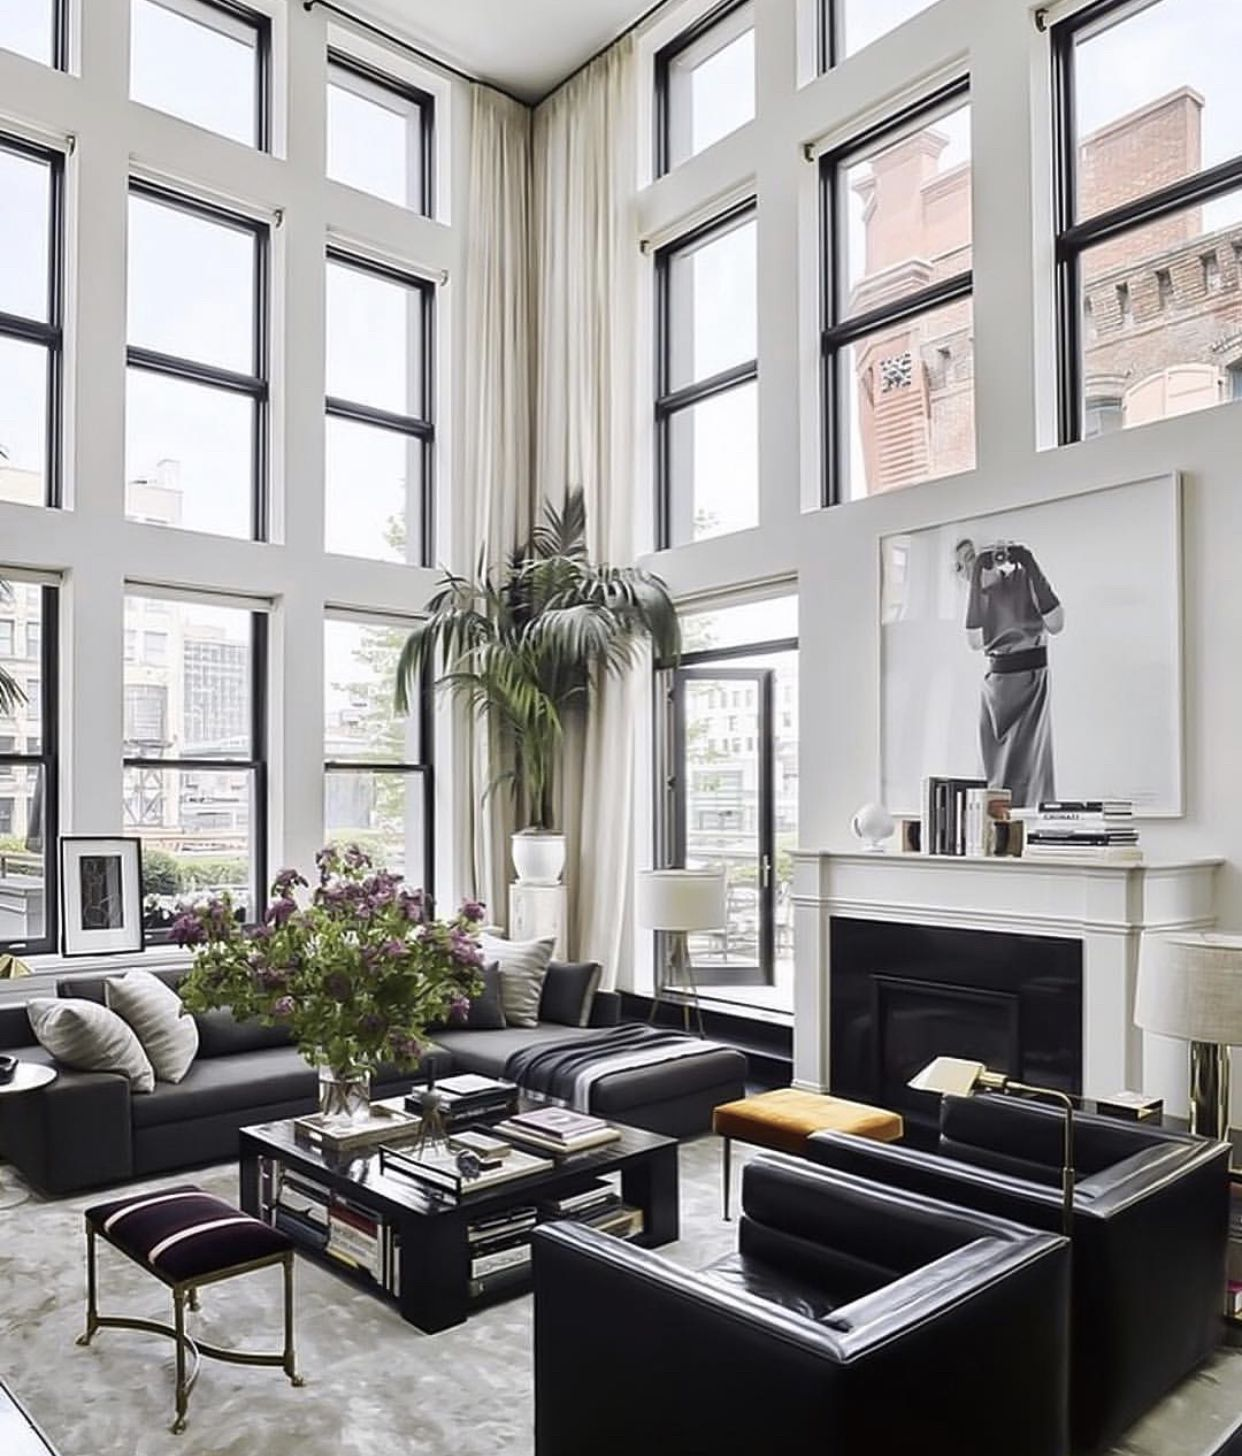 Making Your Living Room Look And Feel More Luxurious Jessica Elizabeth Interiors Tropical Living Room Luxury Living Room Apartment Design